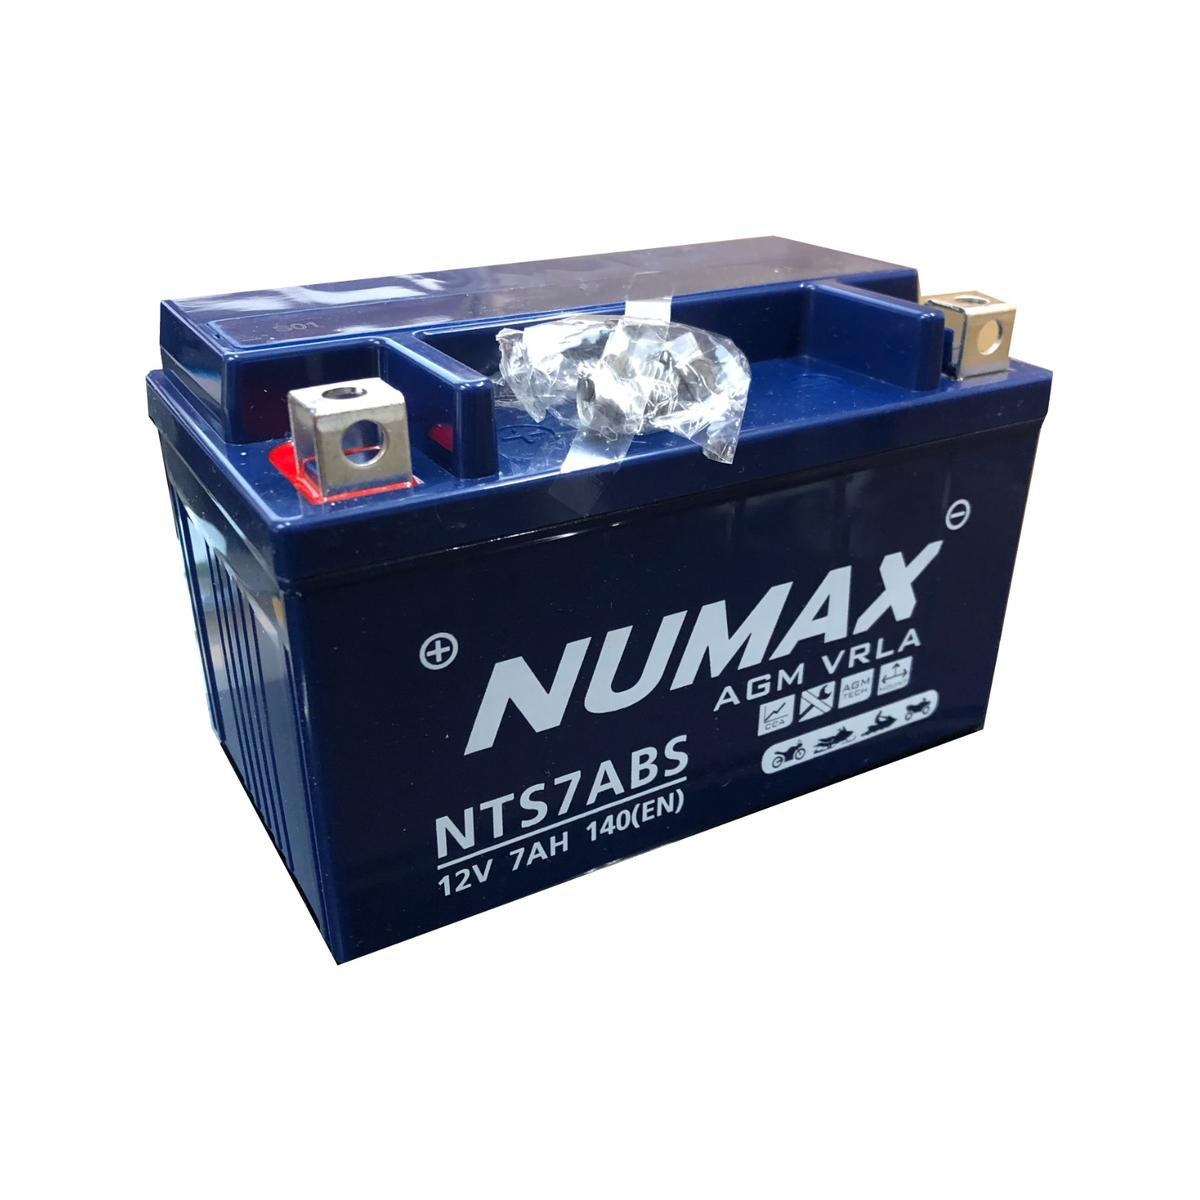 Numax NTS7ABS 12v Motorbike Bike Battery Replaces YTX7A-4 YTX7A-BS YTX7A-B2